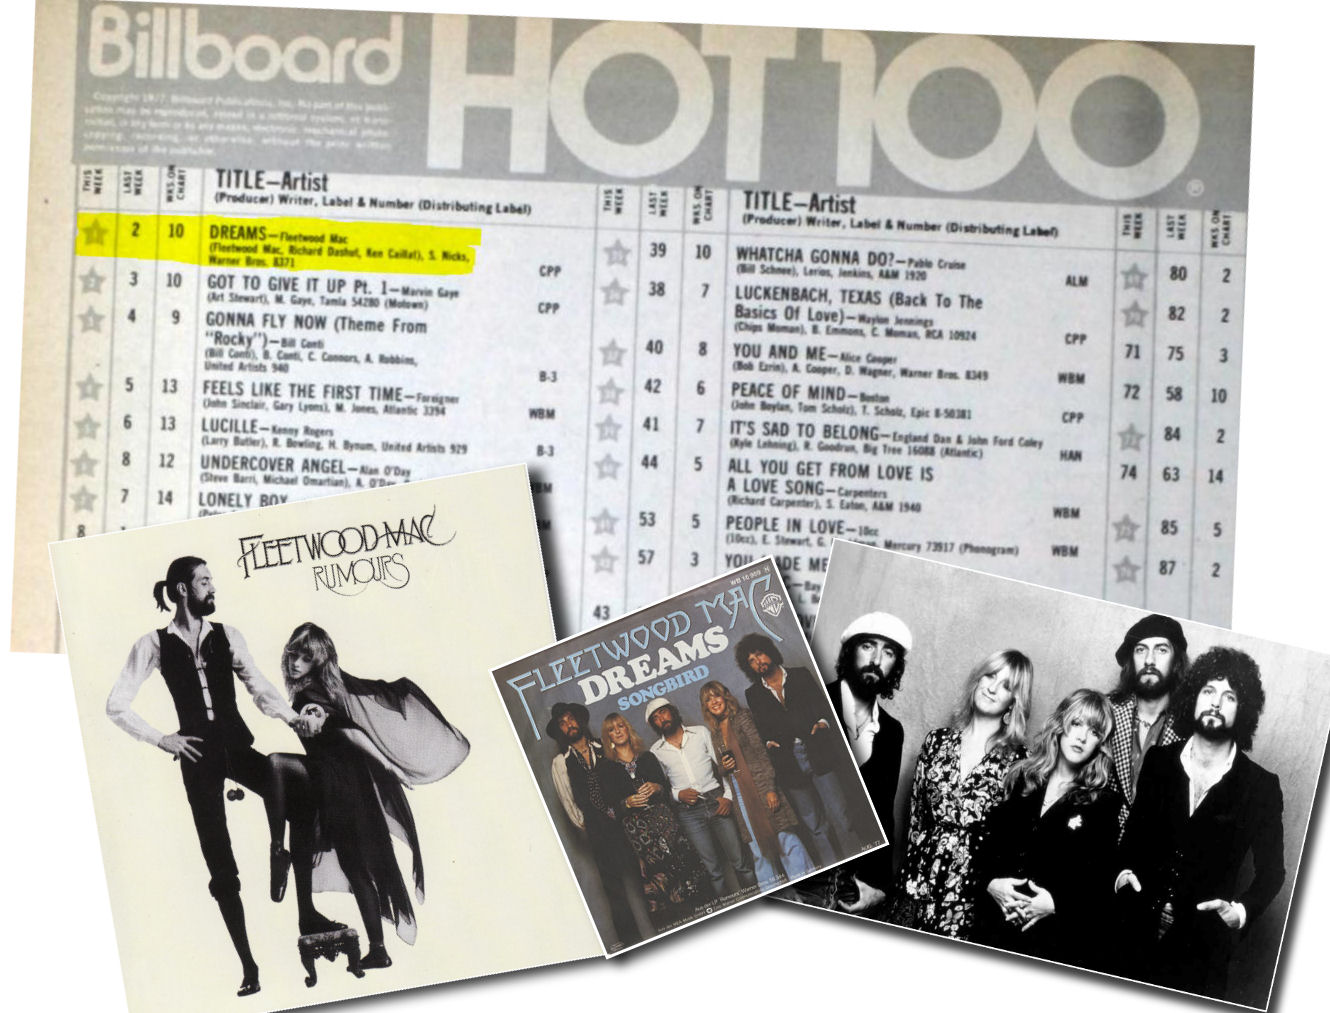 Billboard Top Country Hits - 2000 - YouTube